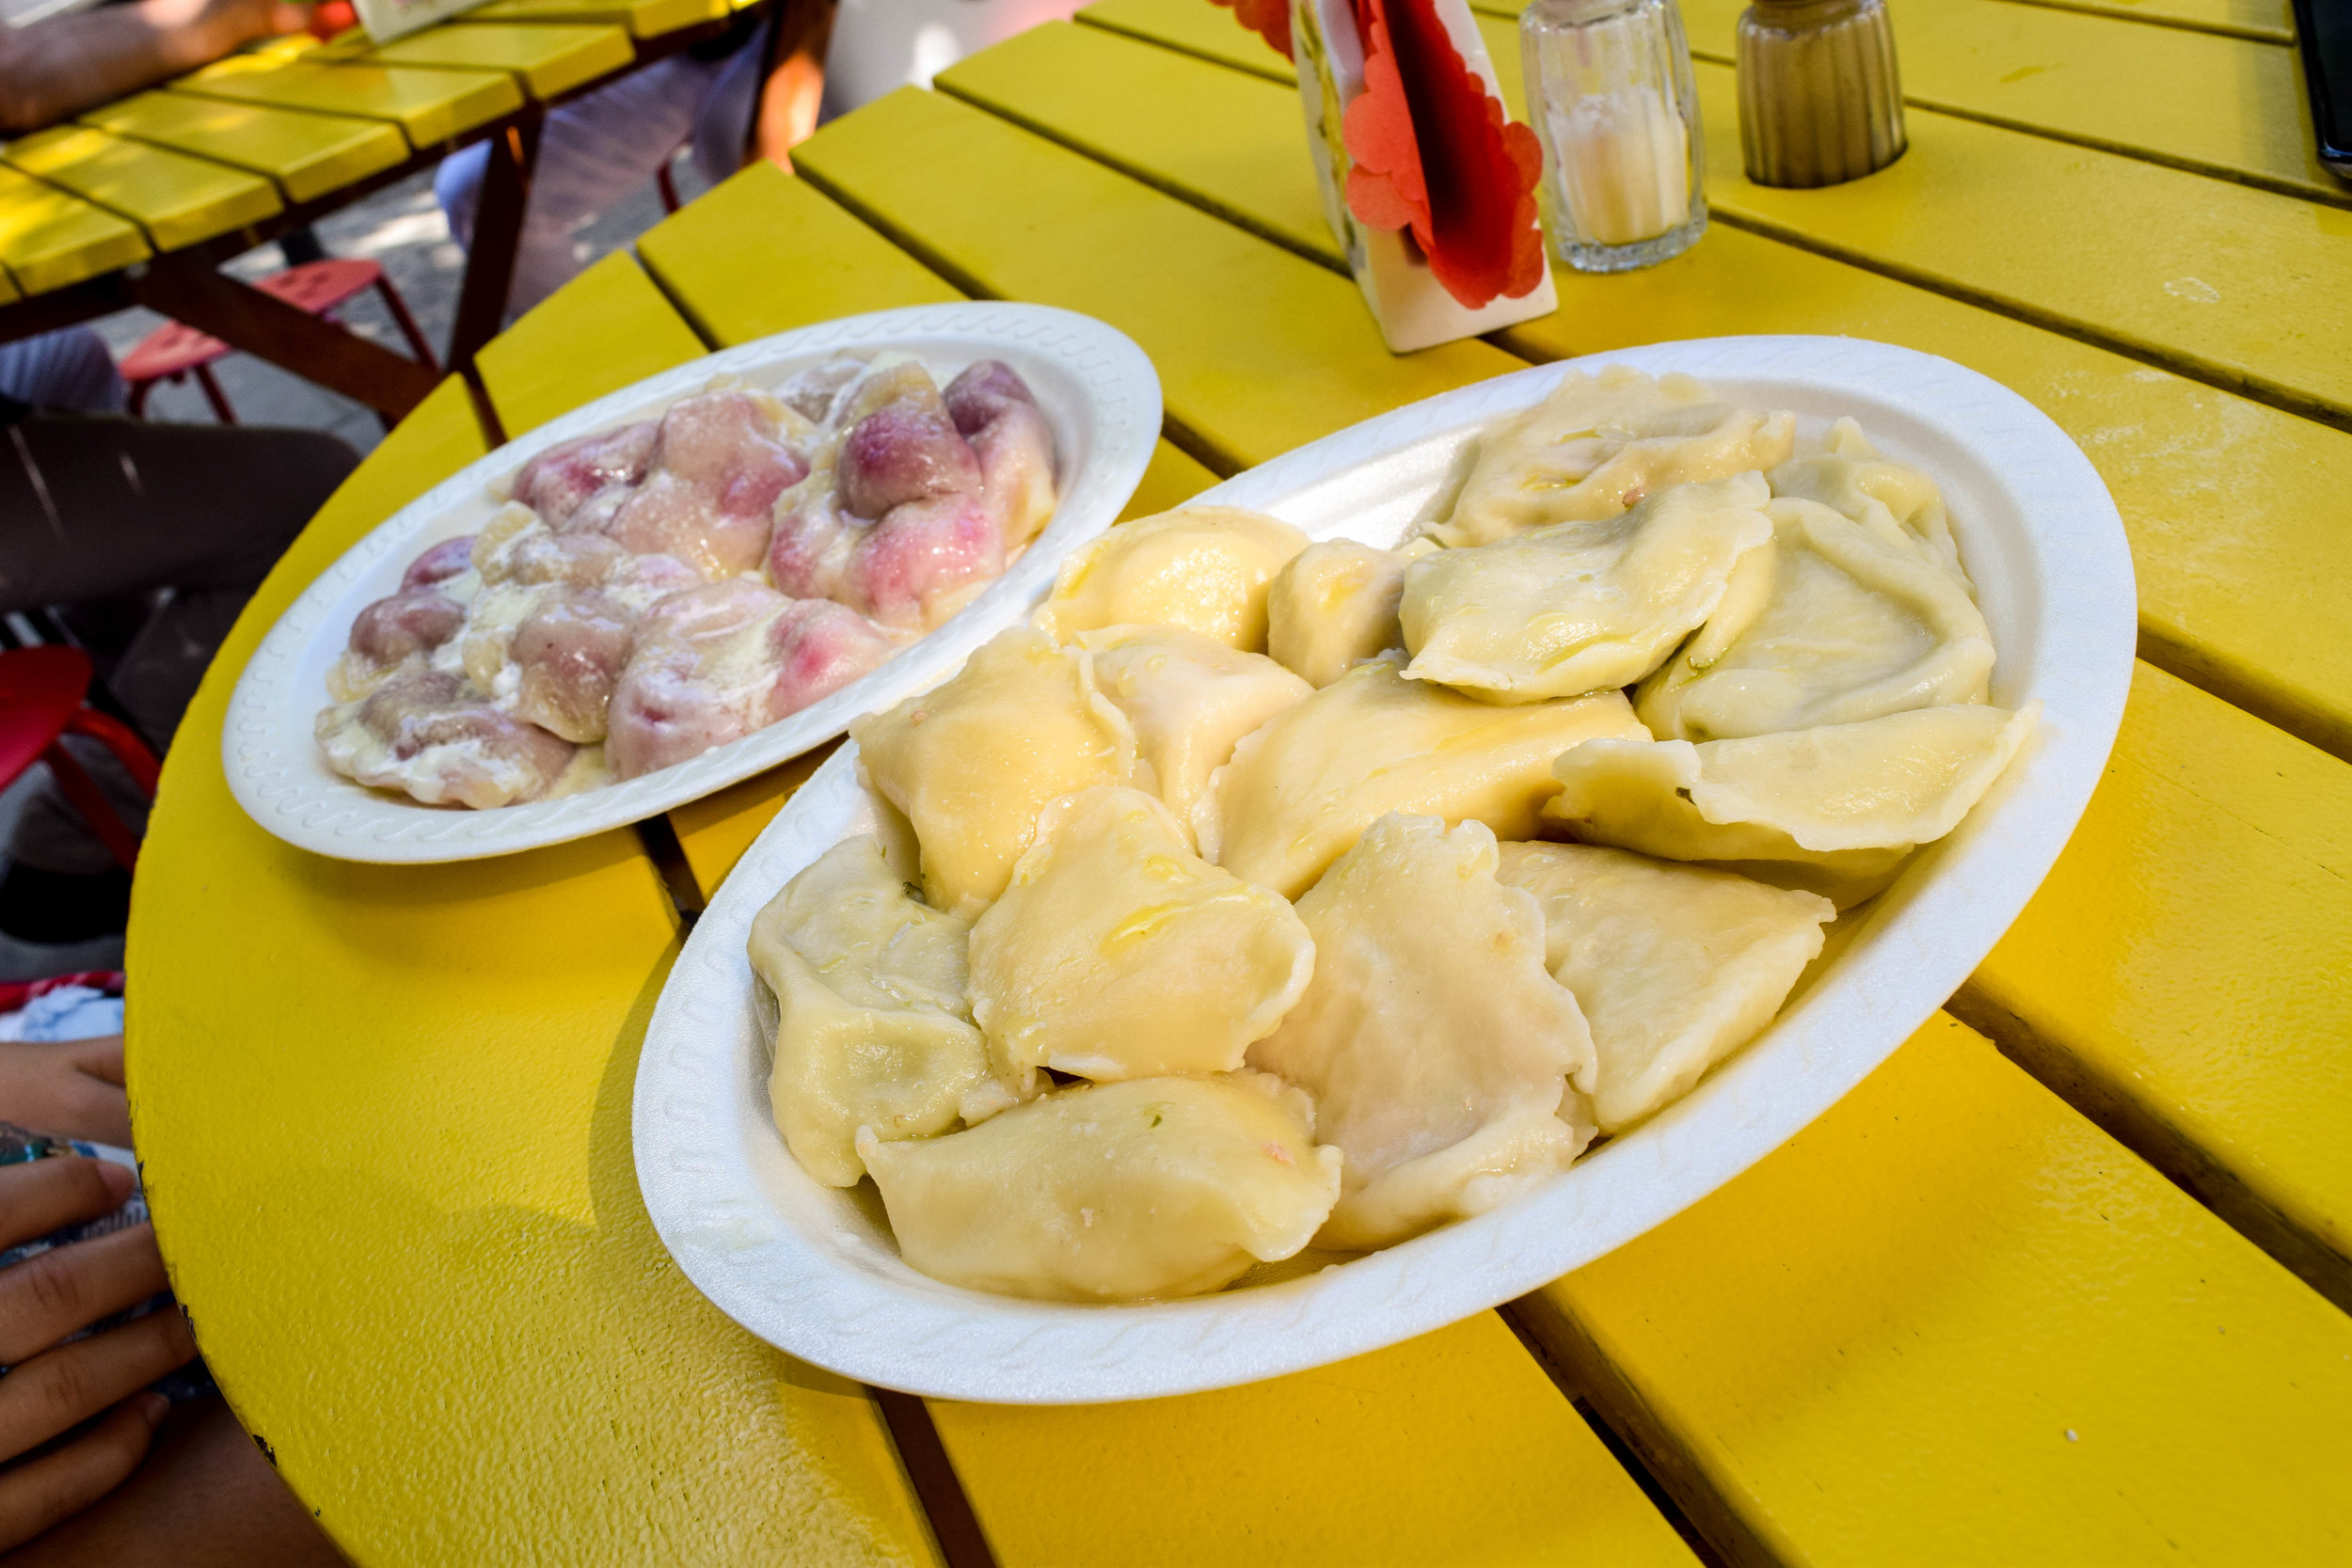 They aren't the most photogenic, but these pierogis at Przystanek Pierogarnia might be the best we had in Poland!